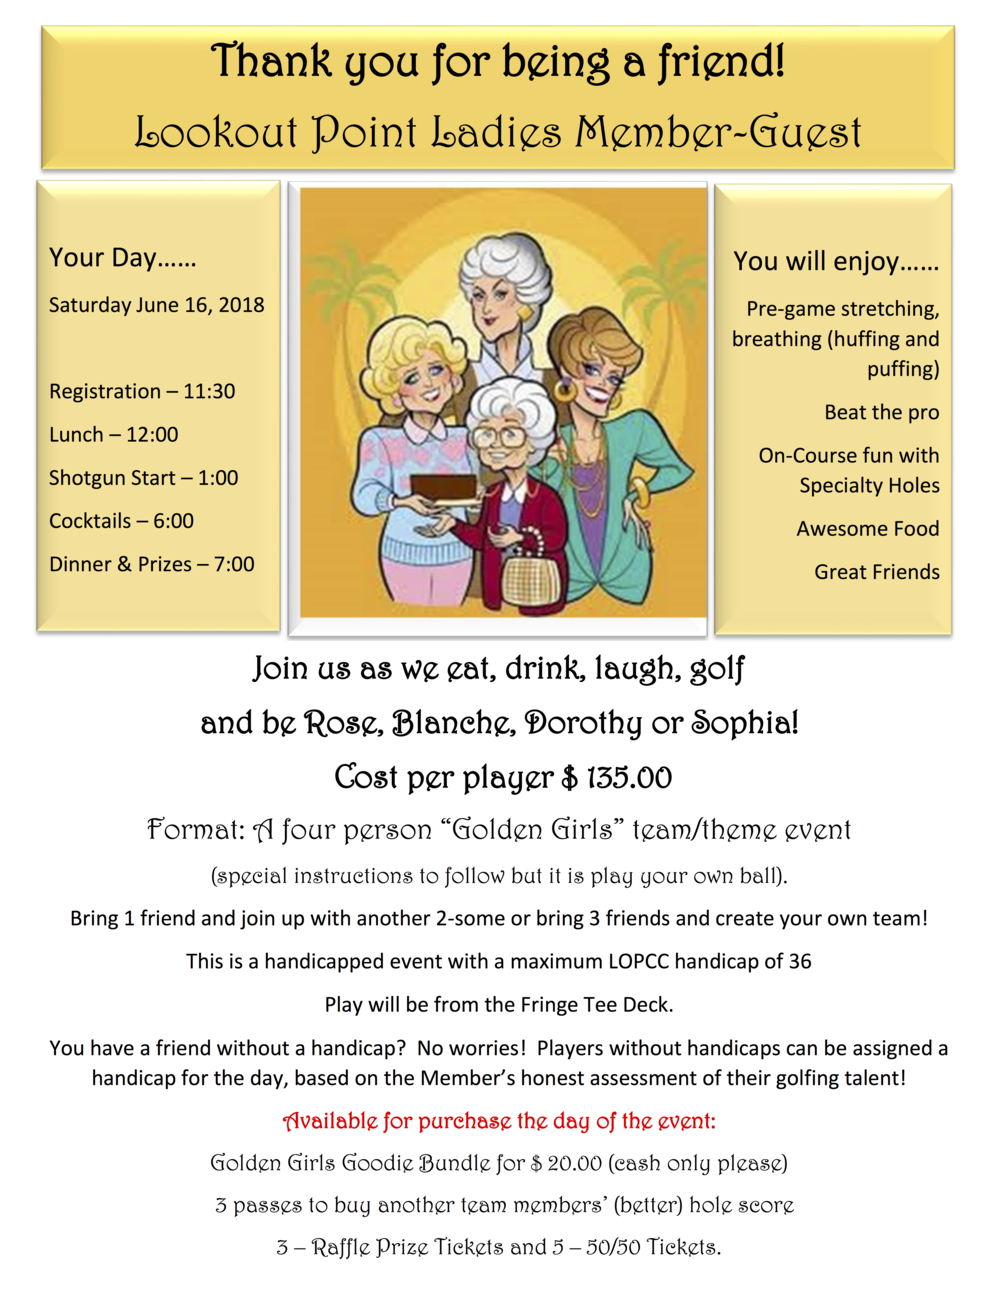 Lookout Point Ladies MG Invitation flyer.png